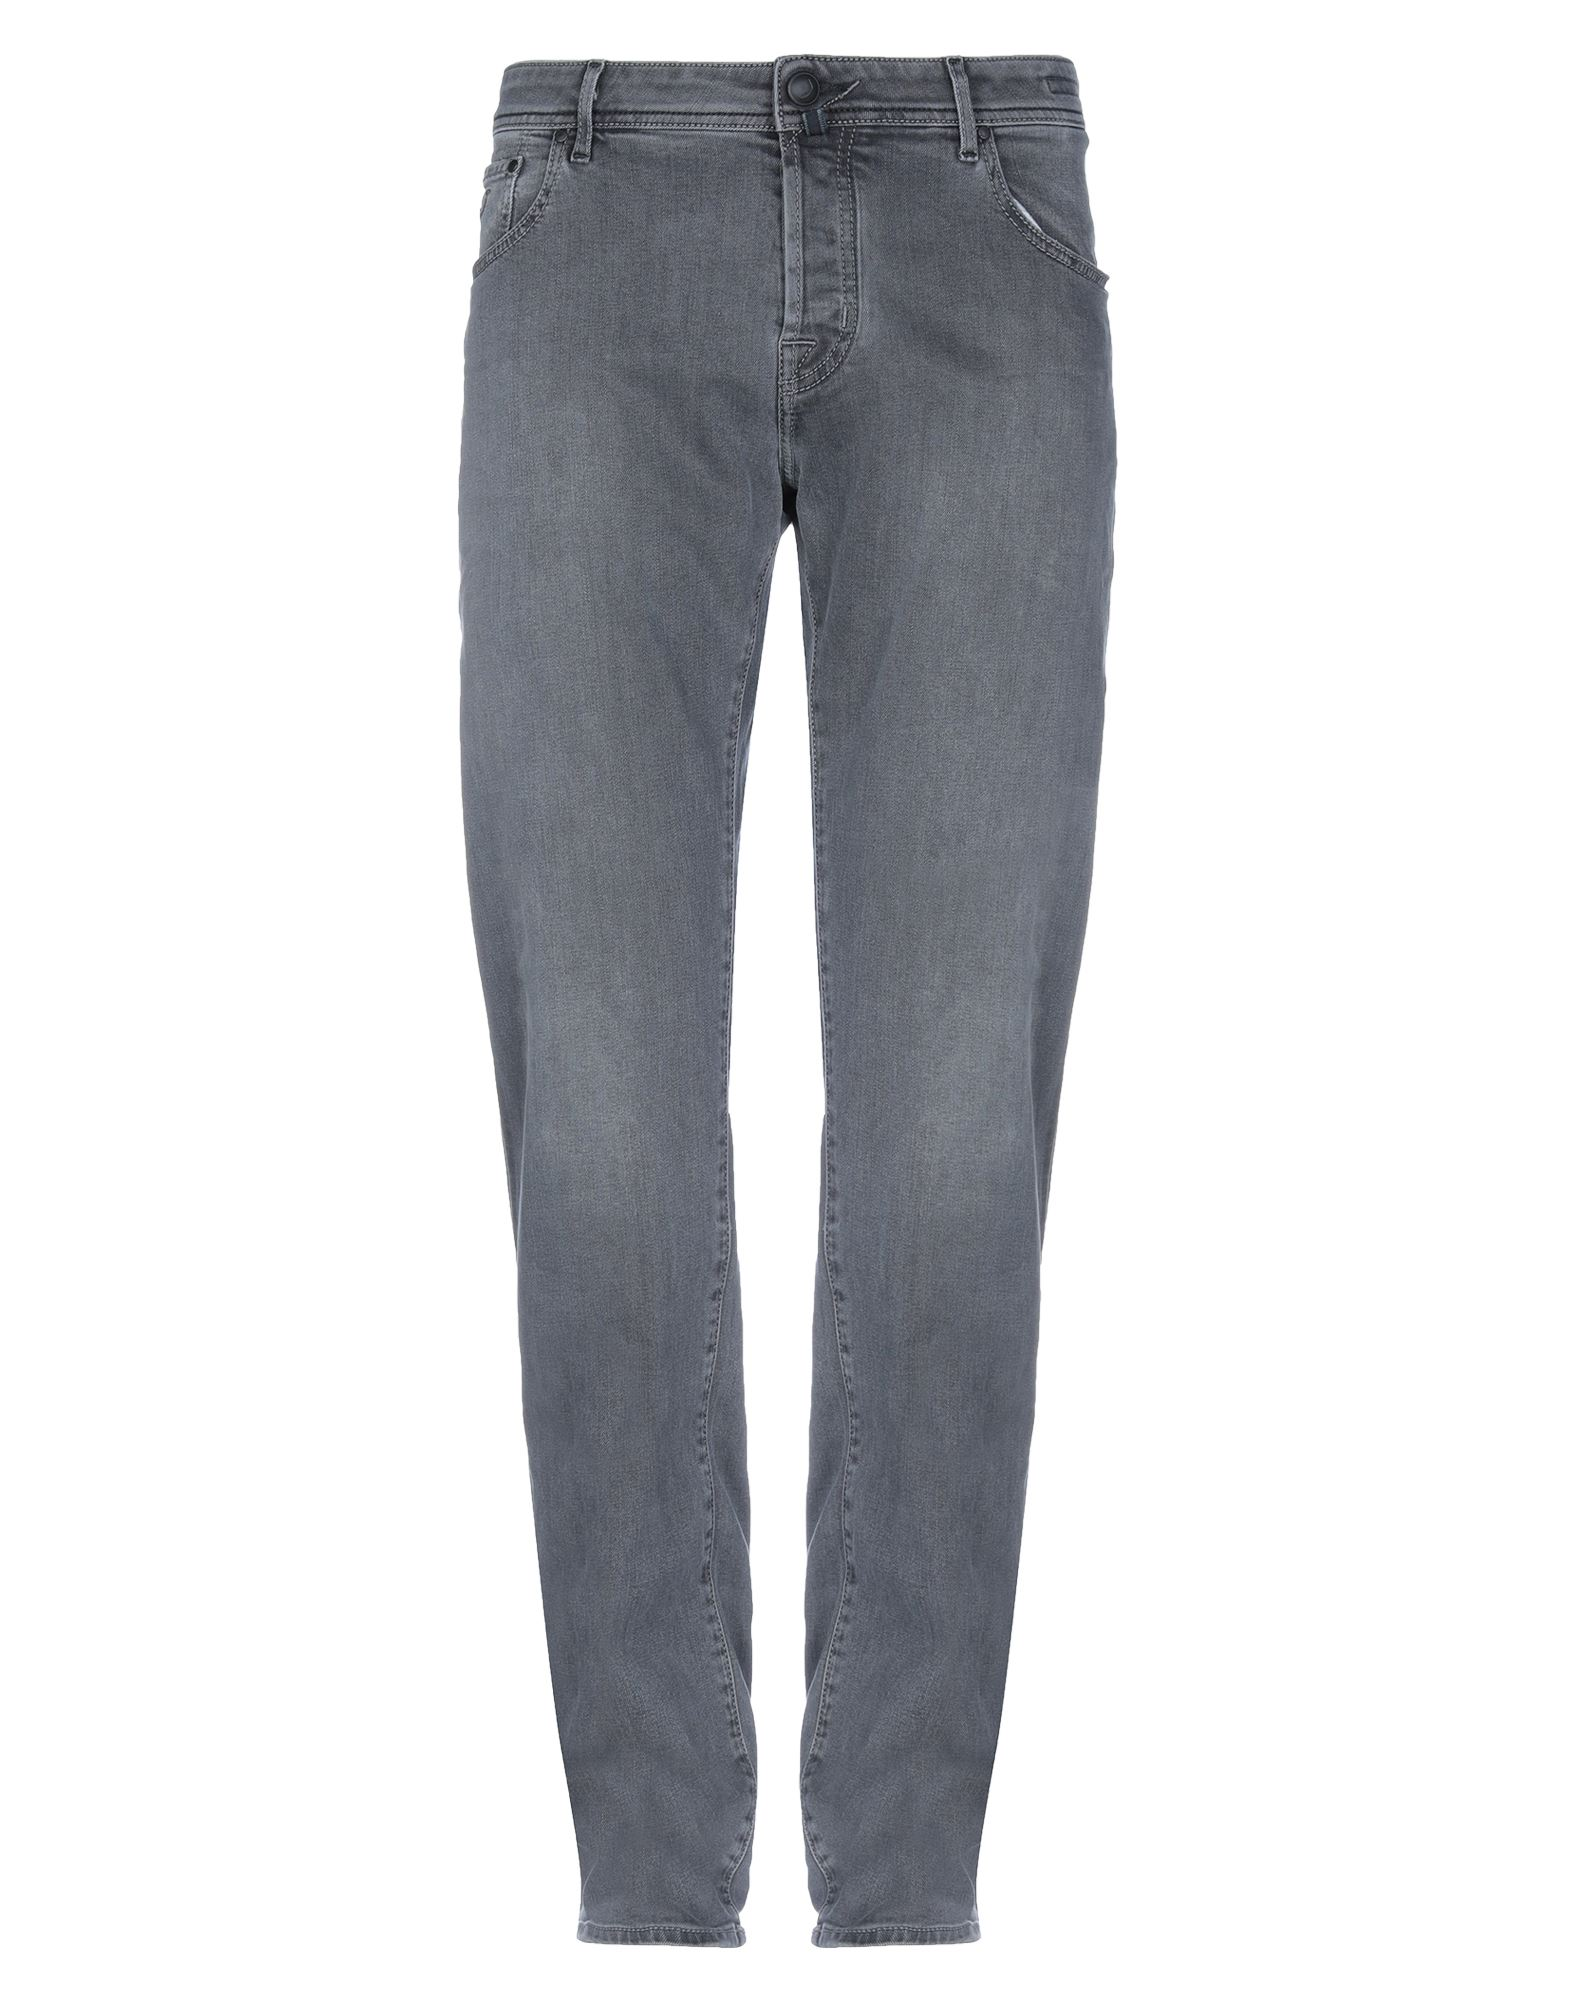 JACOB COHЁN Denim pants - Item 42829066